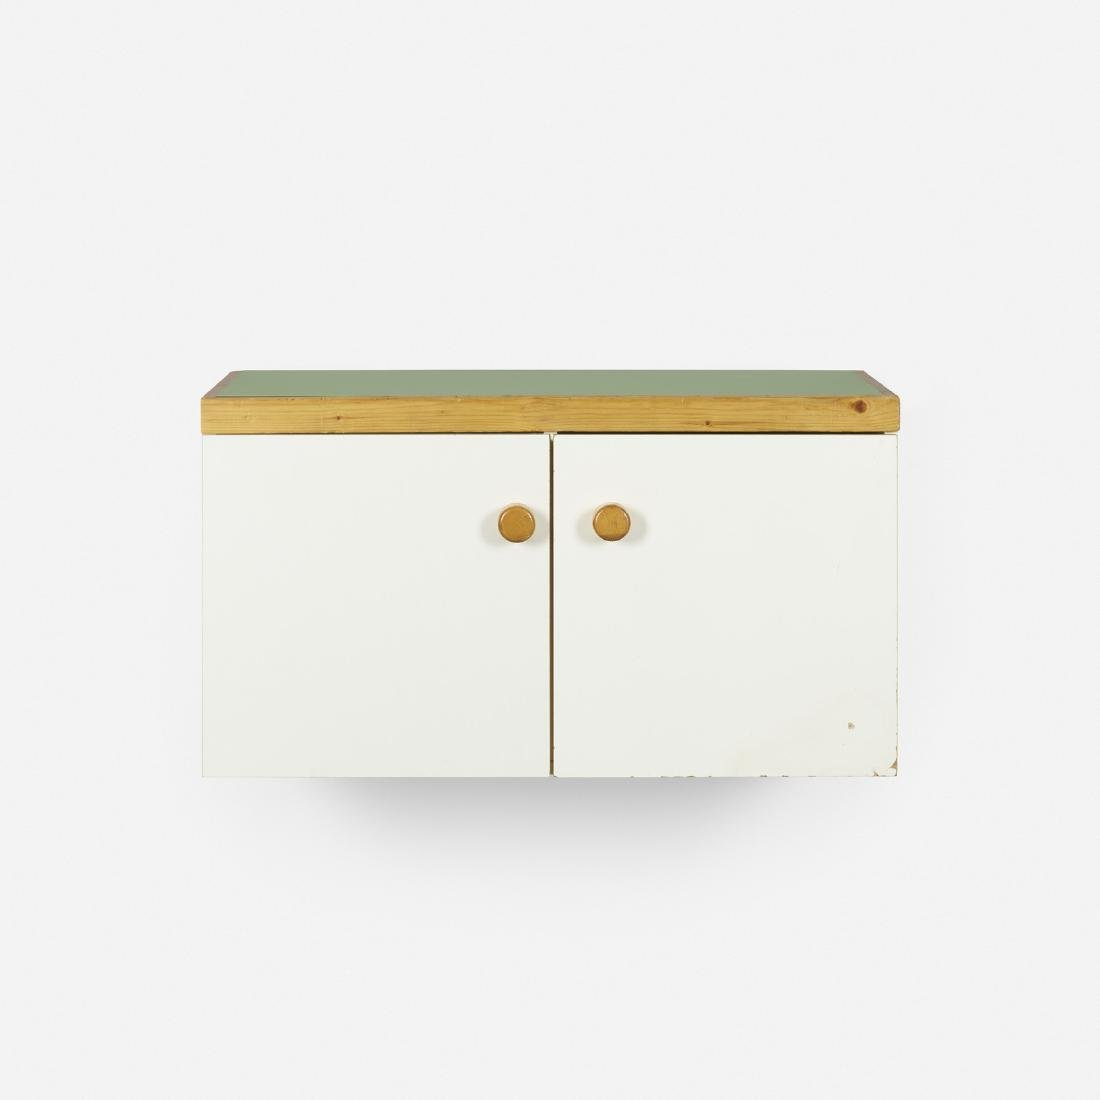 Charlotte Perriand, wall-mounted cabinet, Les Arcs